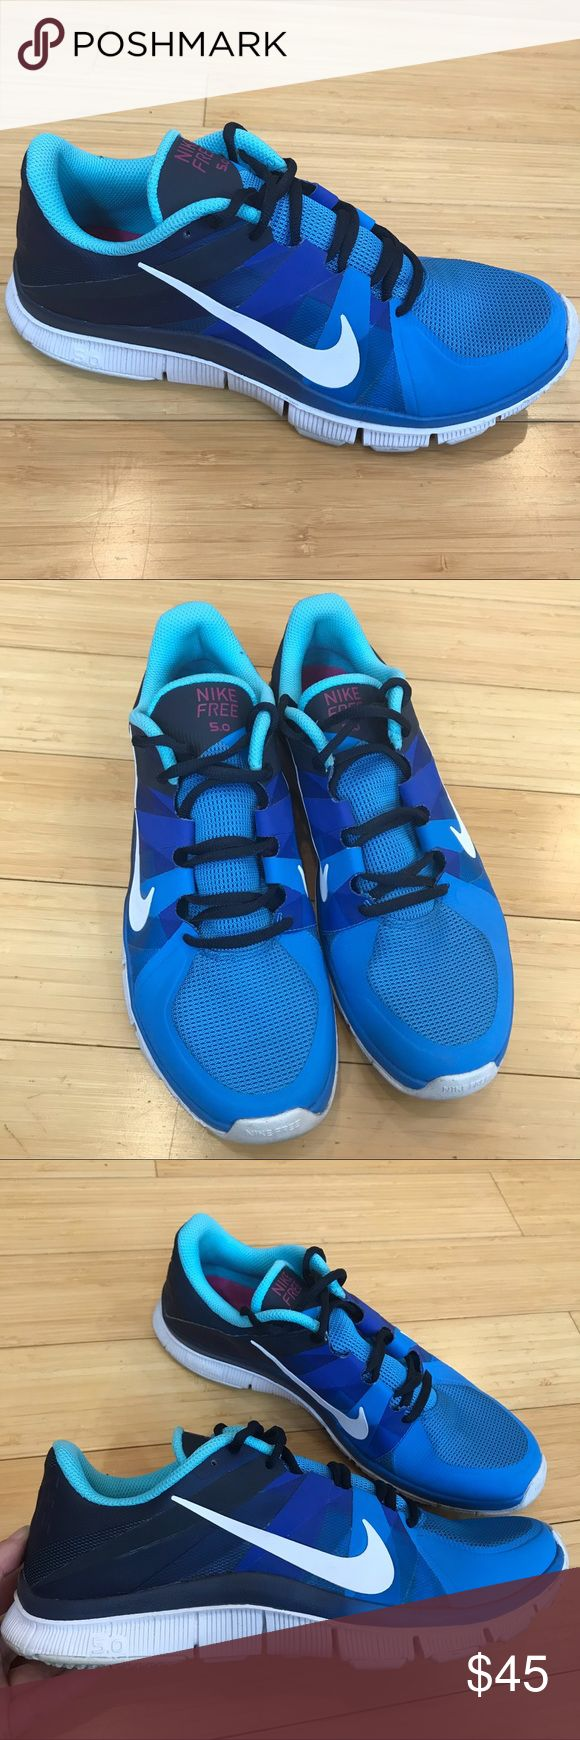 NIKE Free Trainer 5.0, blue. Mens 10.5. Men's Nike free trainer 5.0, size 10.5. Pre-loved but in excellent condition. Uppers look brand new, insides totally clean, bottom soles a little dirty. Blue. Nike Shoes Sneakers